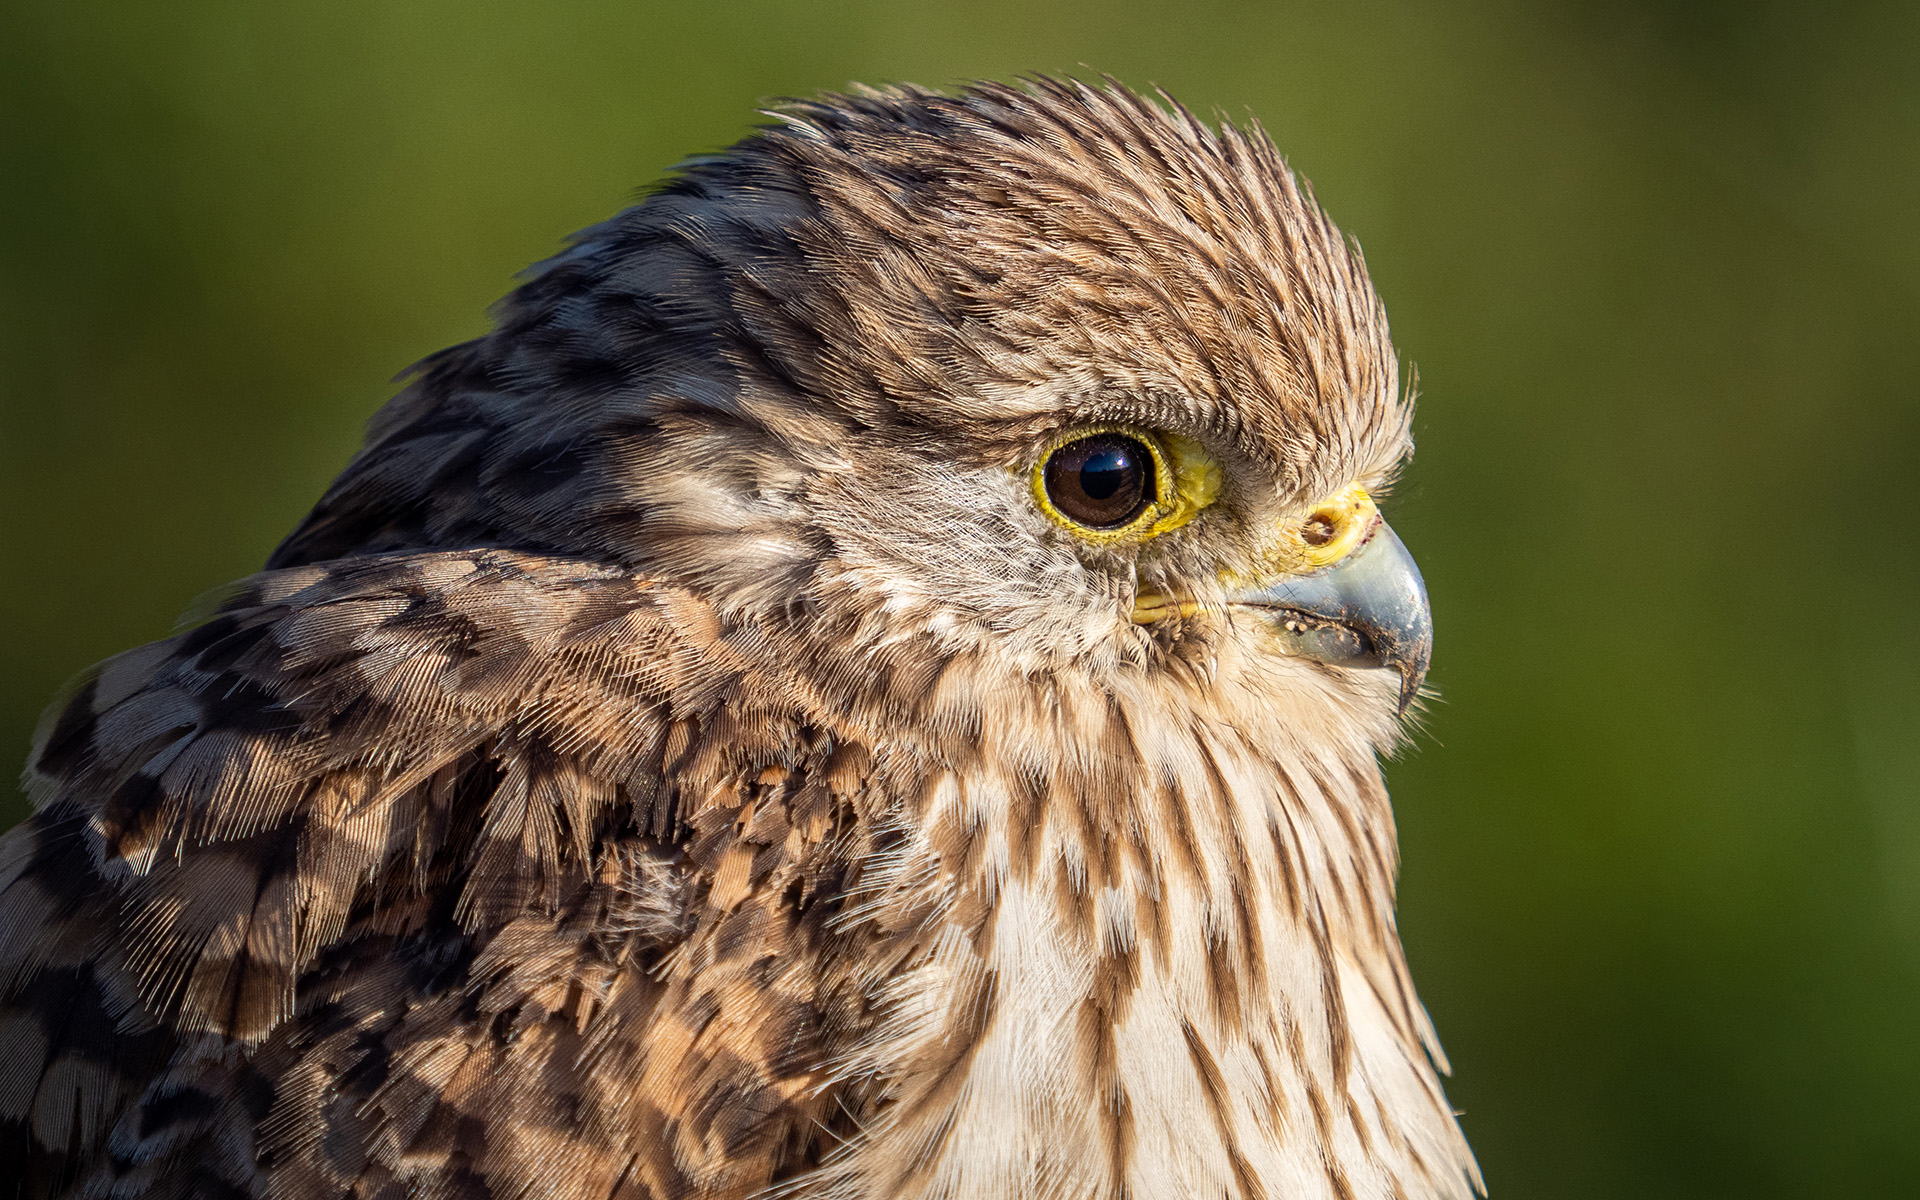 04 – Wildlife (Kestrel)